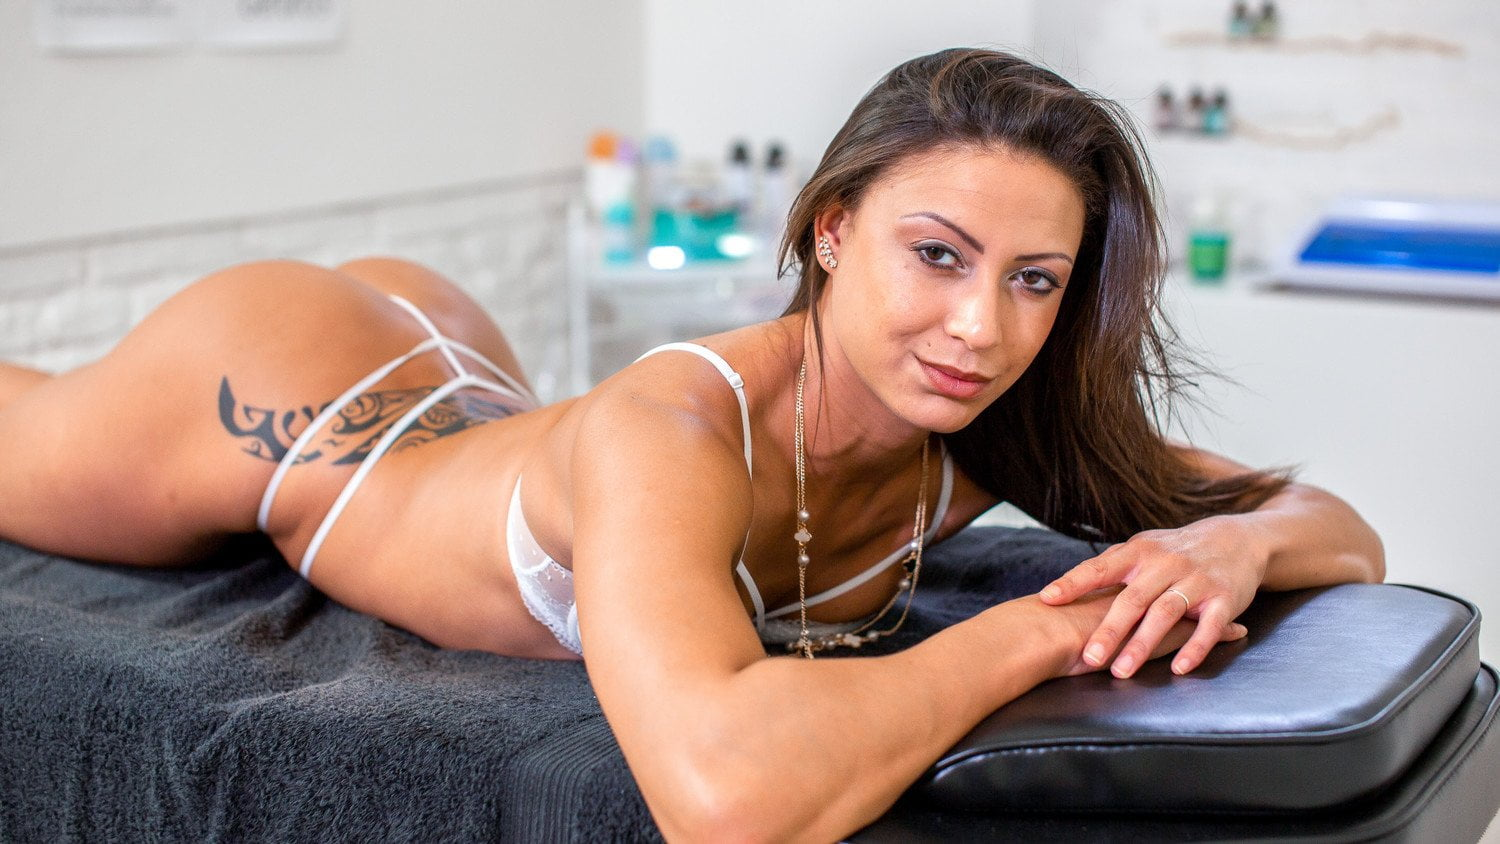 69 Fuck bitches abroad - foreign chick wild 69 and doggy style fuck